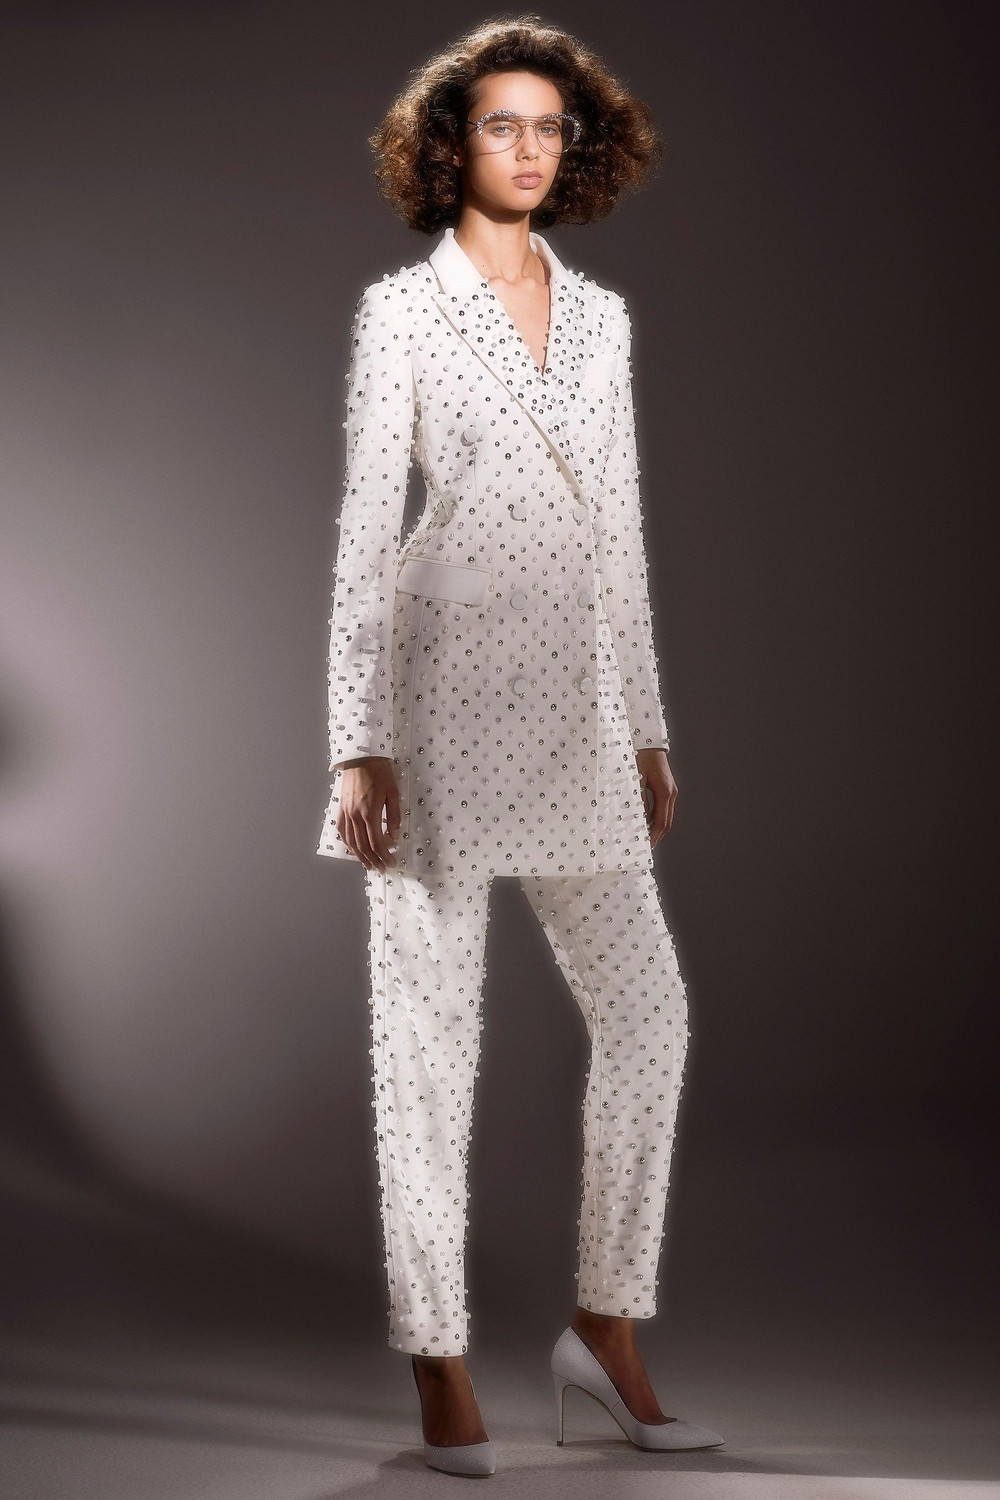 A Viktor & Rolf wedding pantsuit with beading, studs and long sleeves